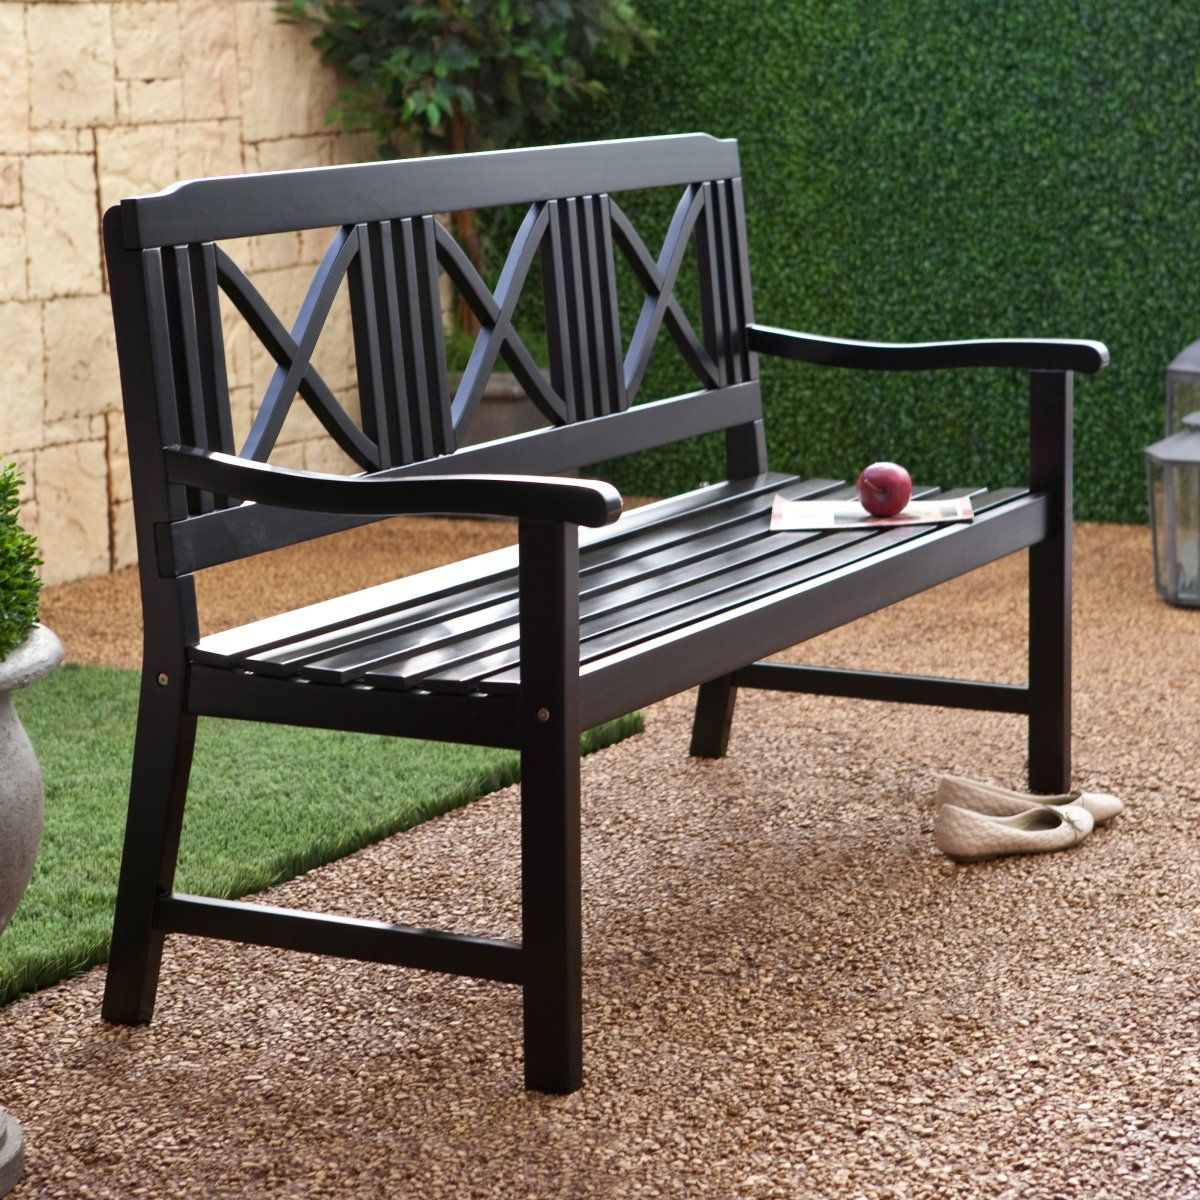 Magnificent Matera 5 Ft Painted Bench Black Backyard Ideas Ncnpc Chair Design For Home Ncnpcorg